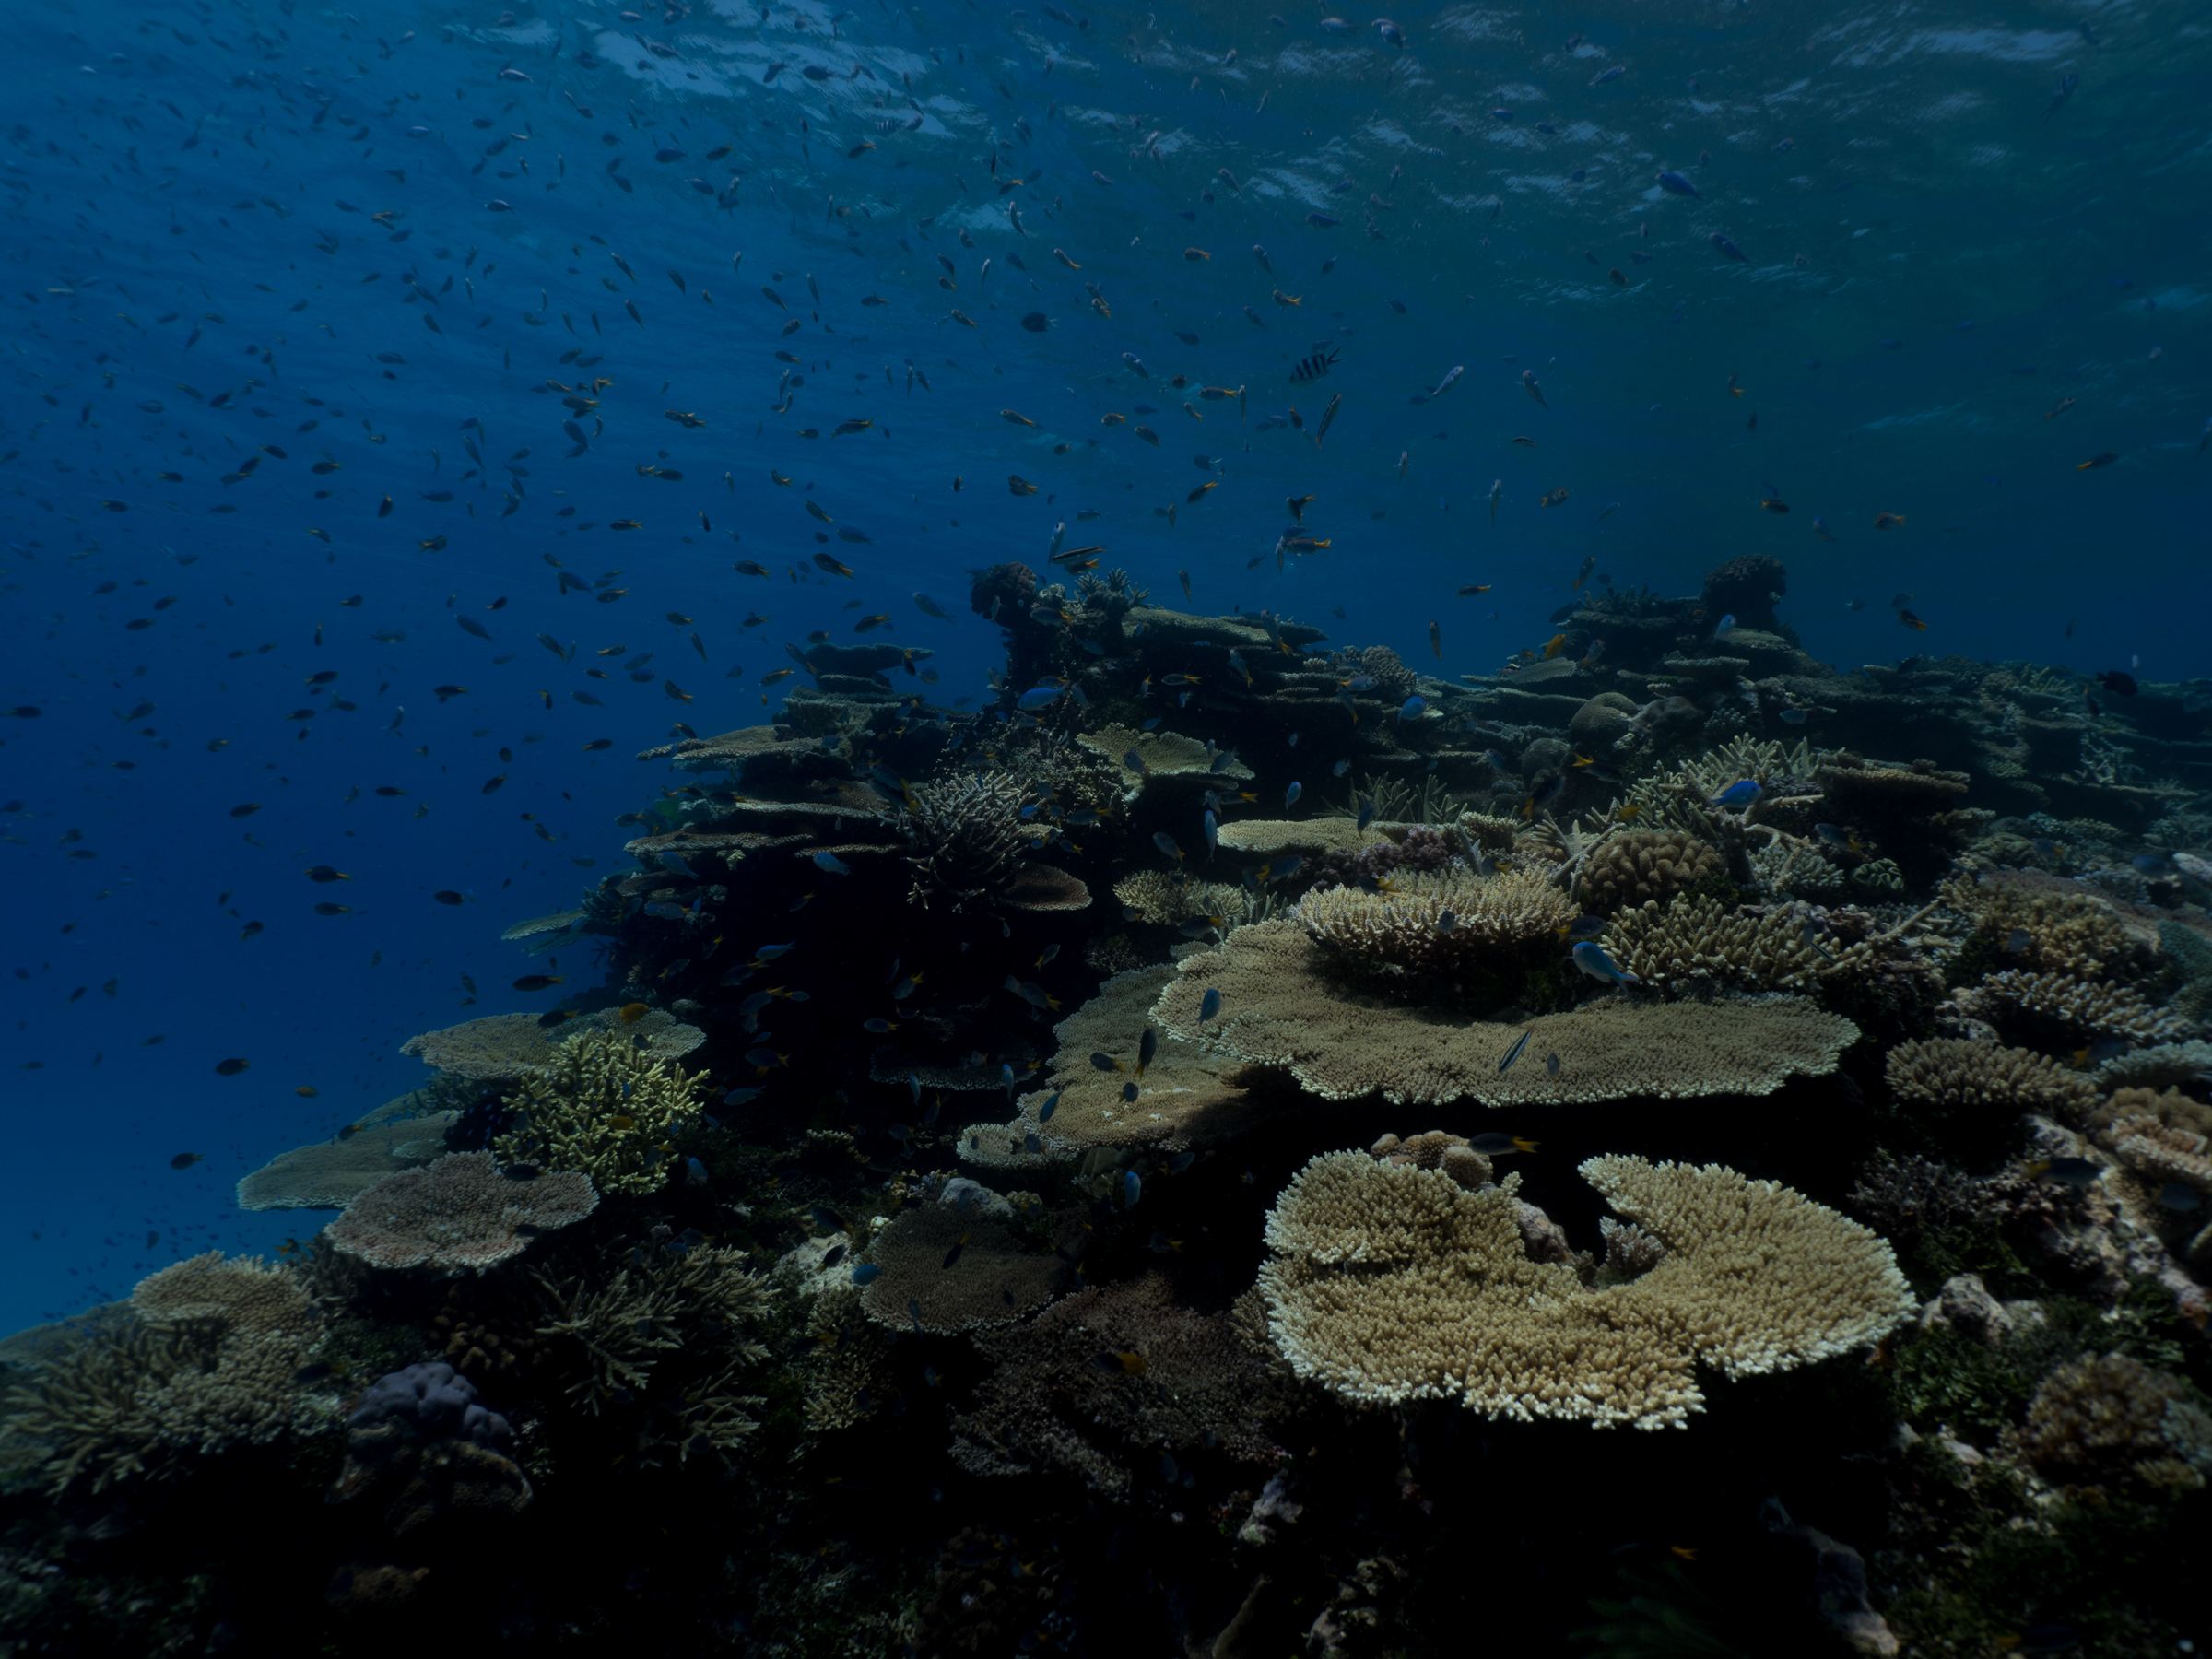 Underwater Snowstorm - The beginnings of life on the reef